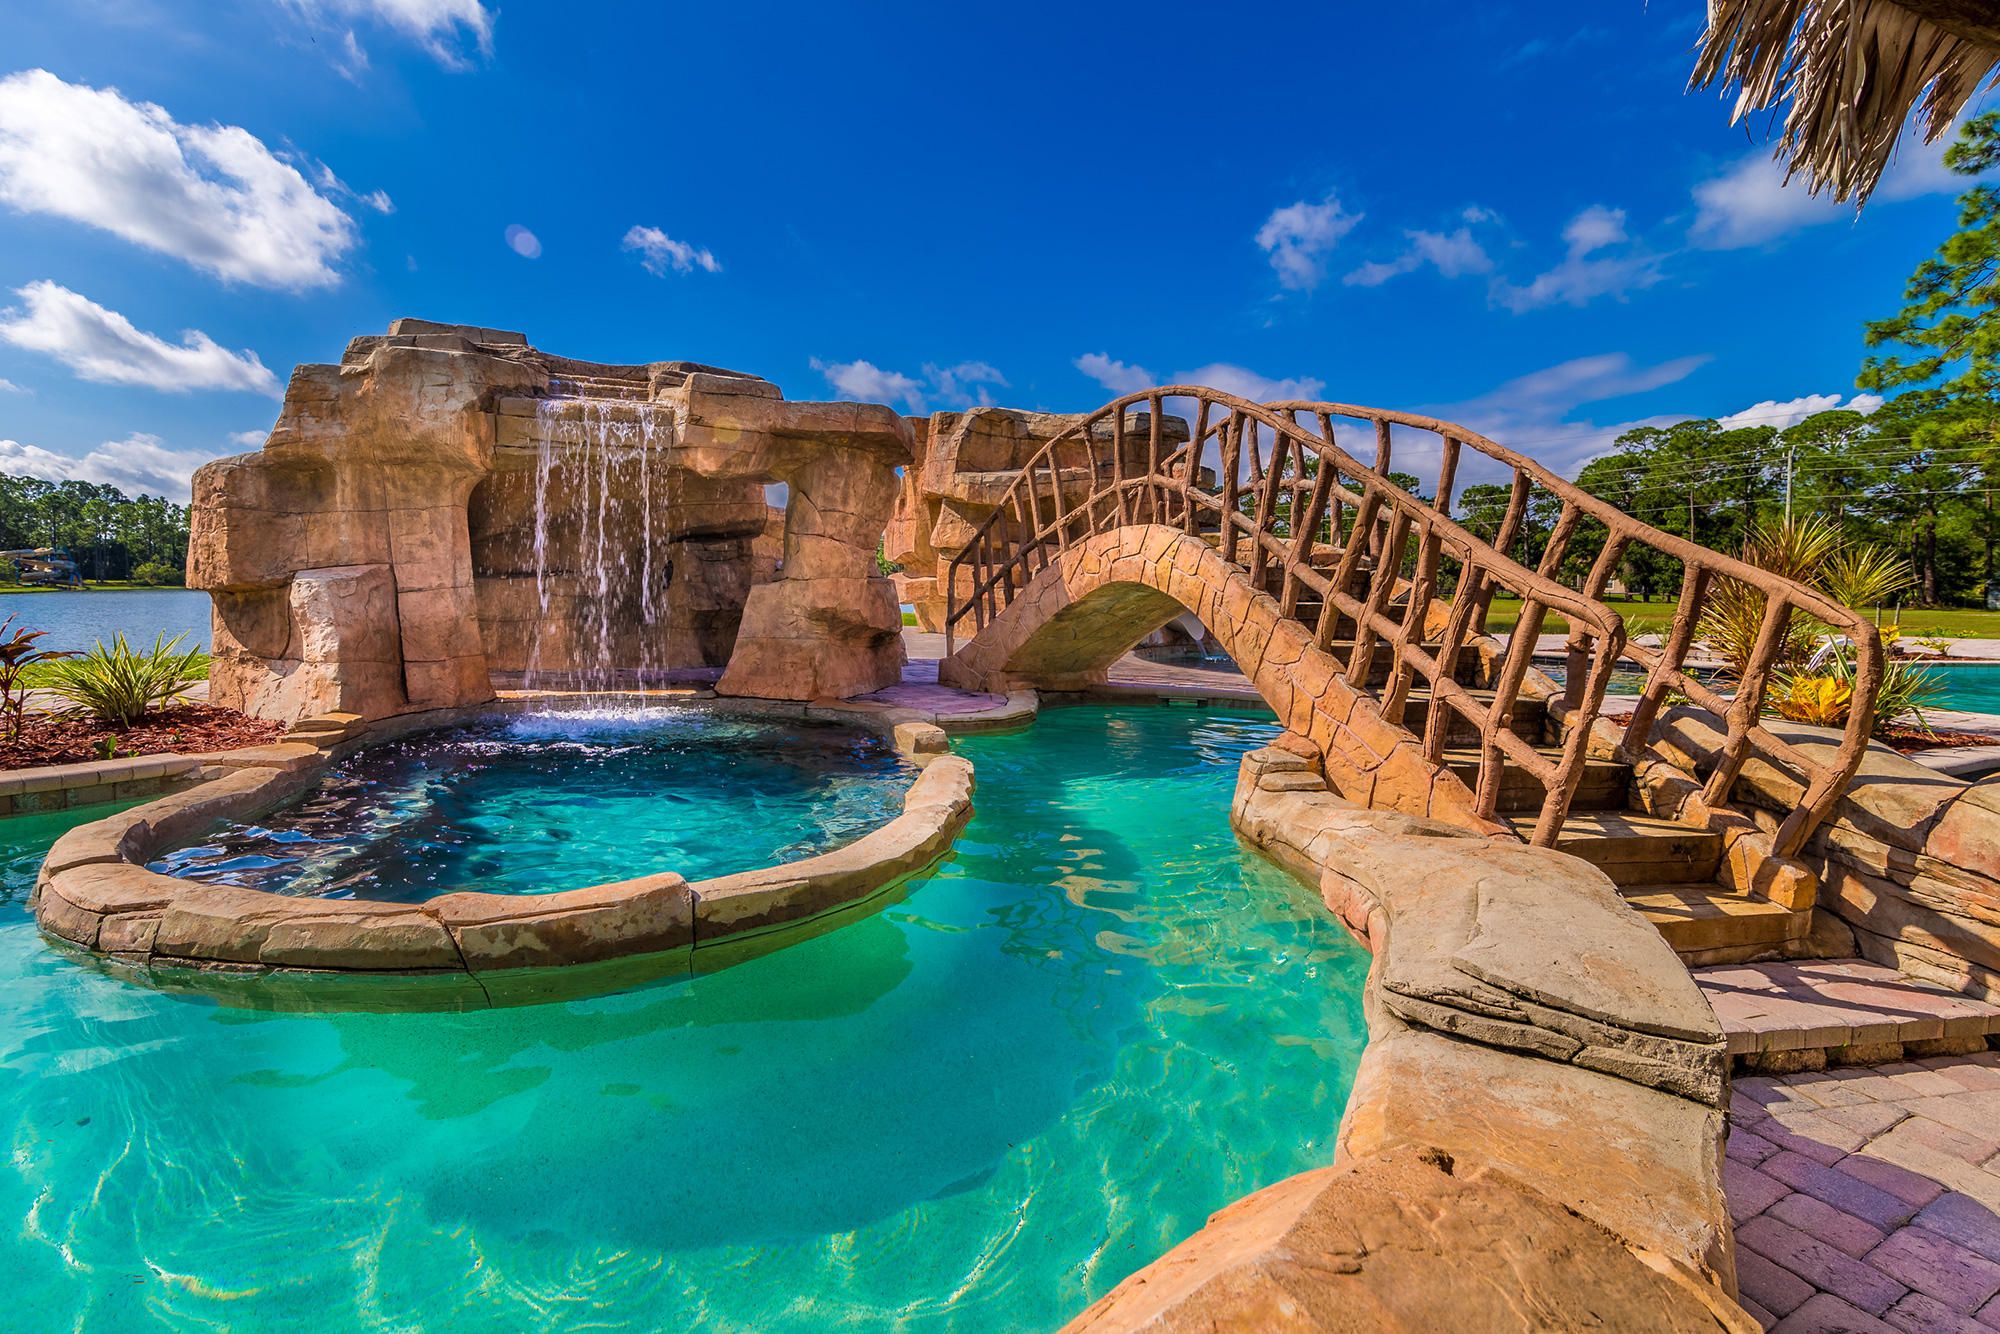 Disney Lovers' Florida House with Two Mickey Mouse–Shaped Pools Hits the Market for $850K disney-house-pool-bridge